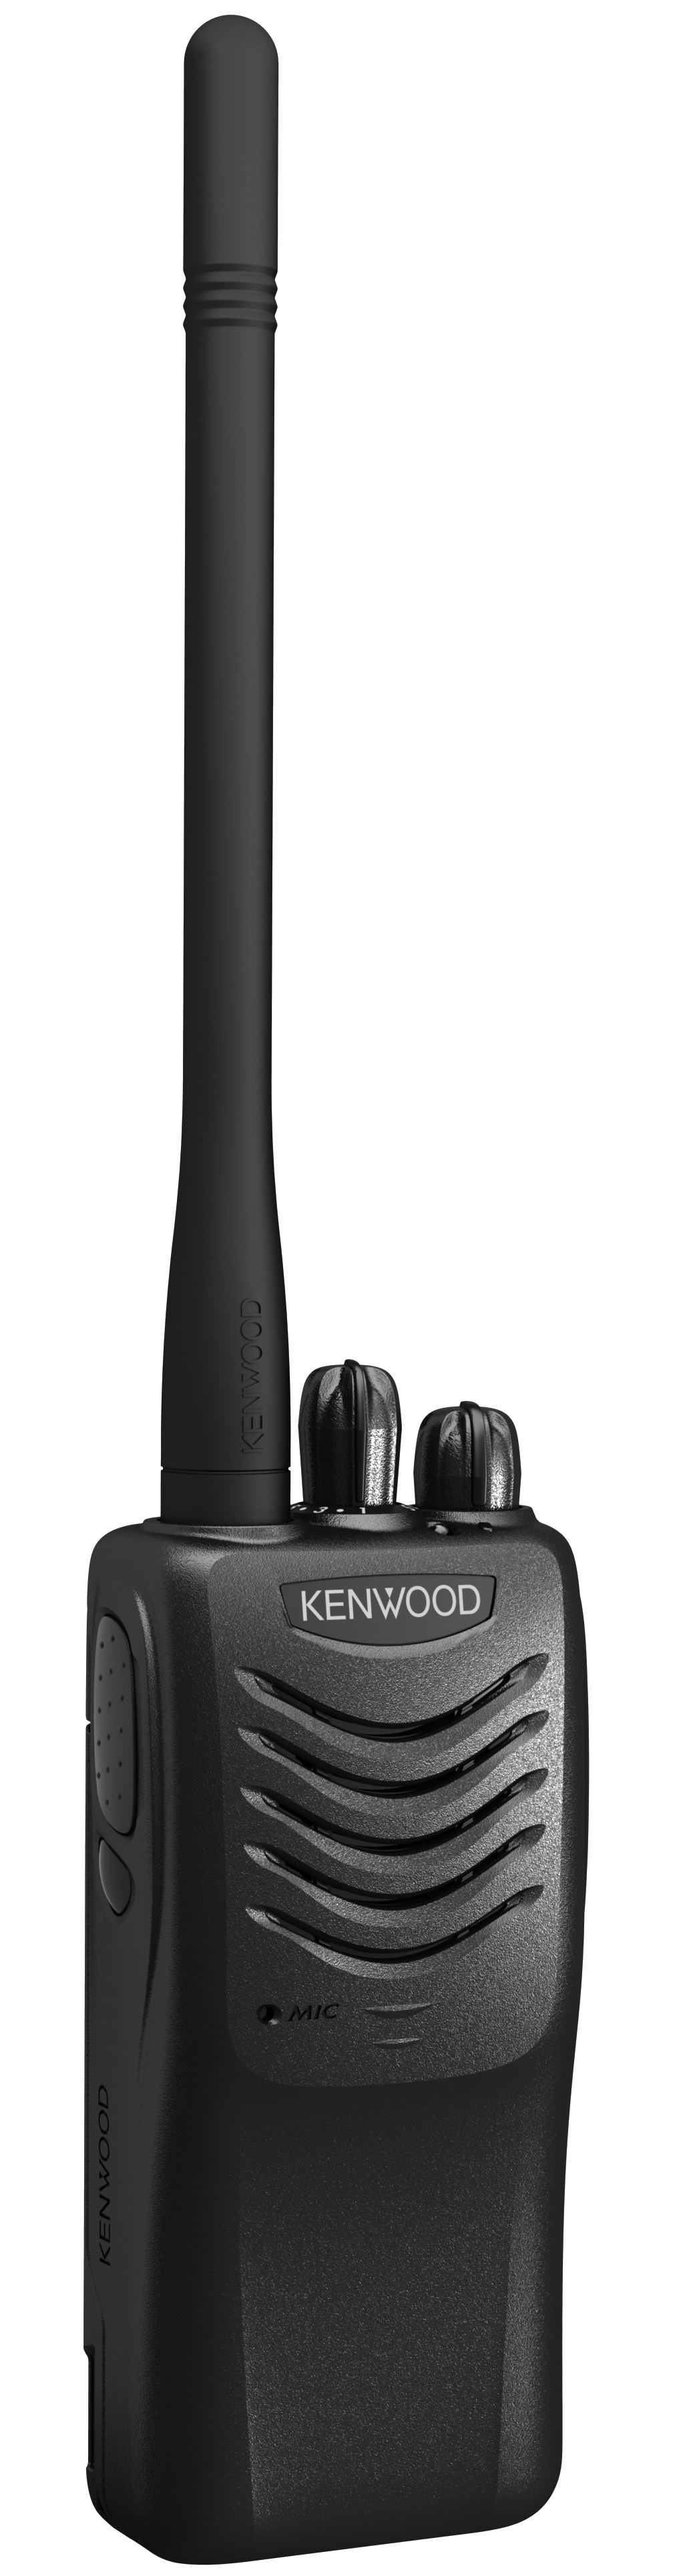 Kenwood Handheld Portable Radios